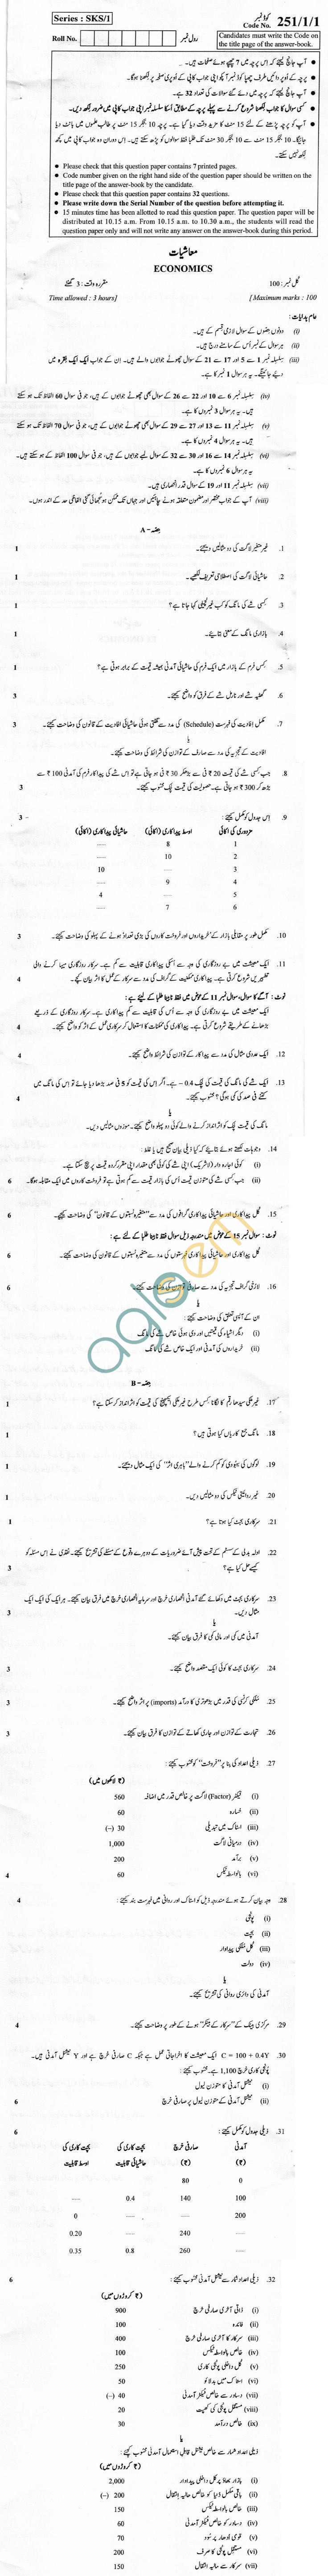 CBSE Board Exam 2013 Class XII Question Paper - Economics (Urdu Version)